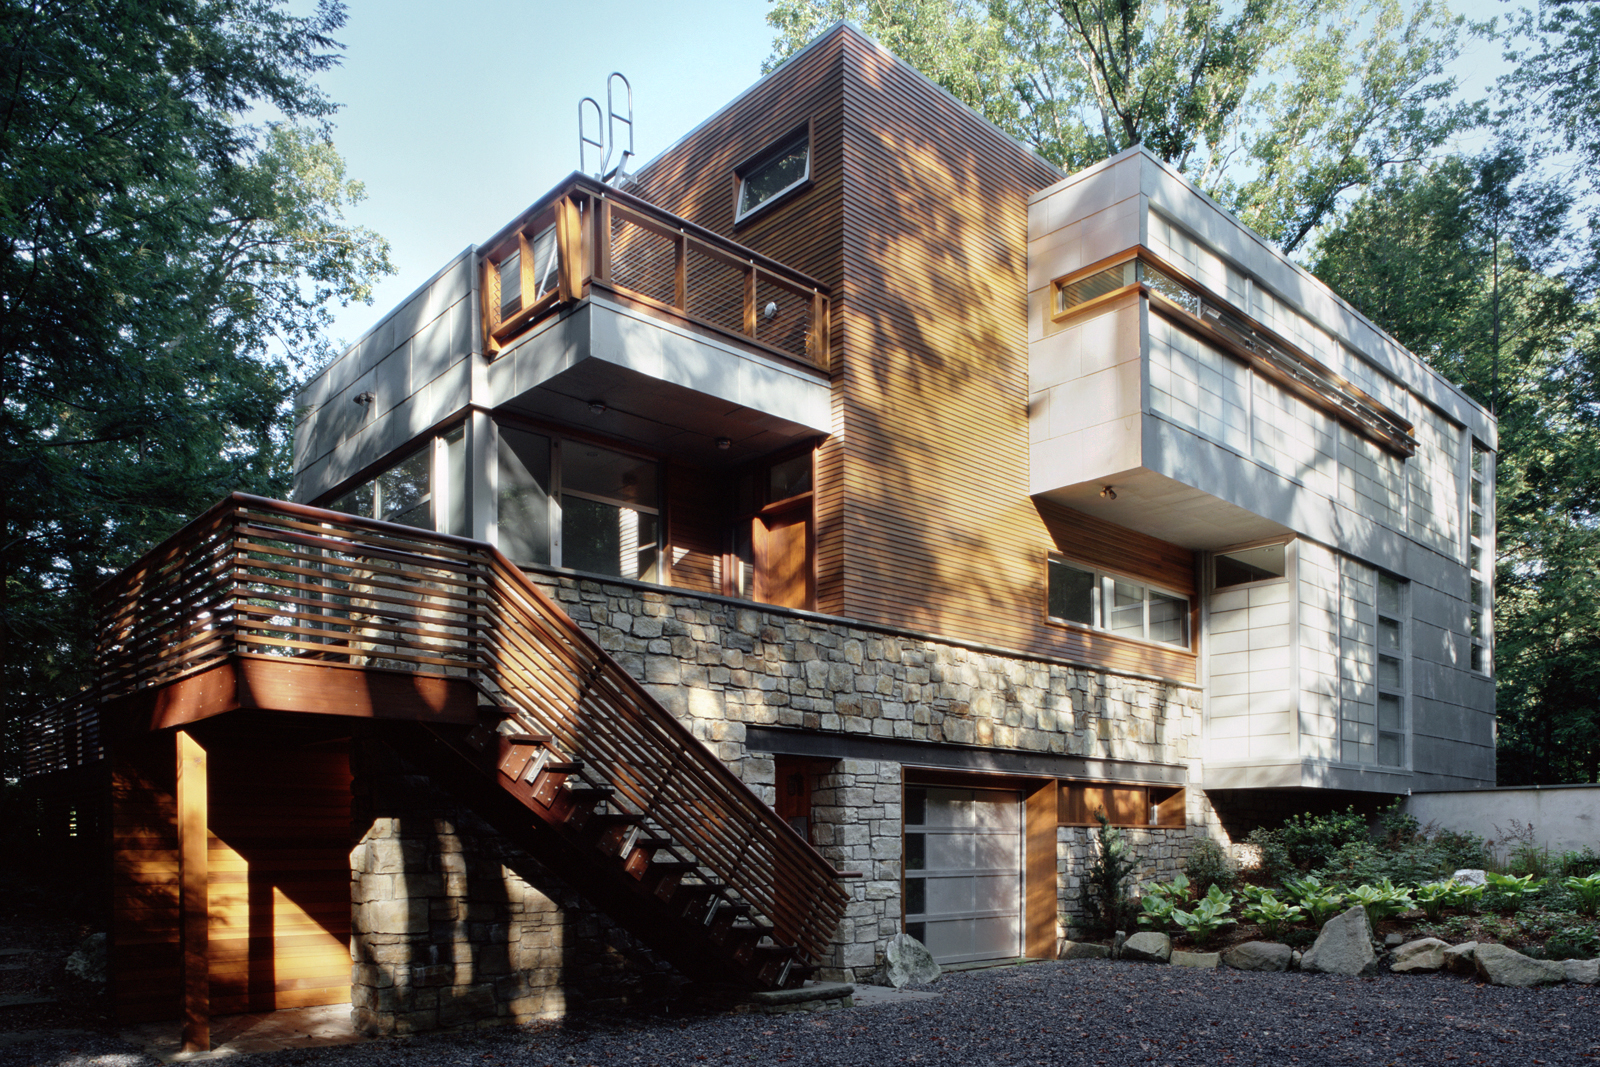 04-res4-resolution-4-architecture-modern-home-residential-lakeside-house-exterior.jpg